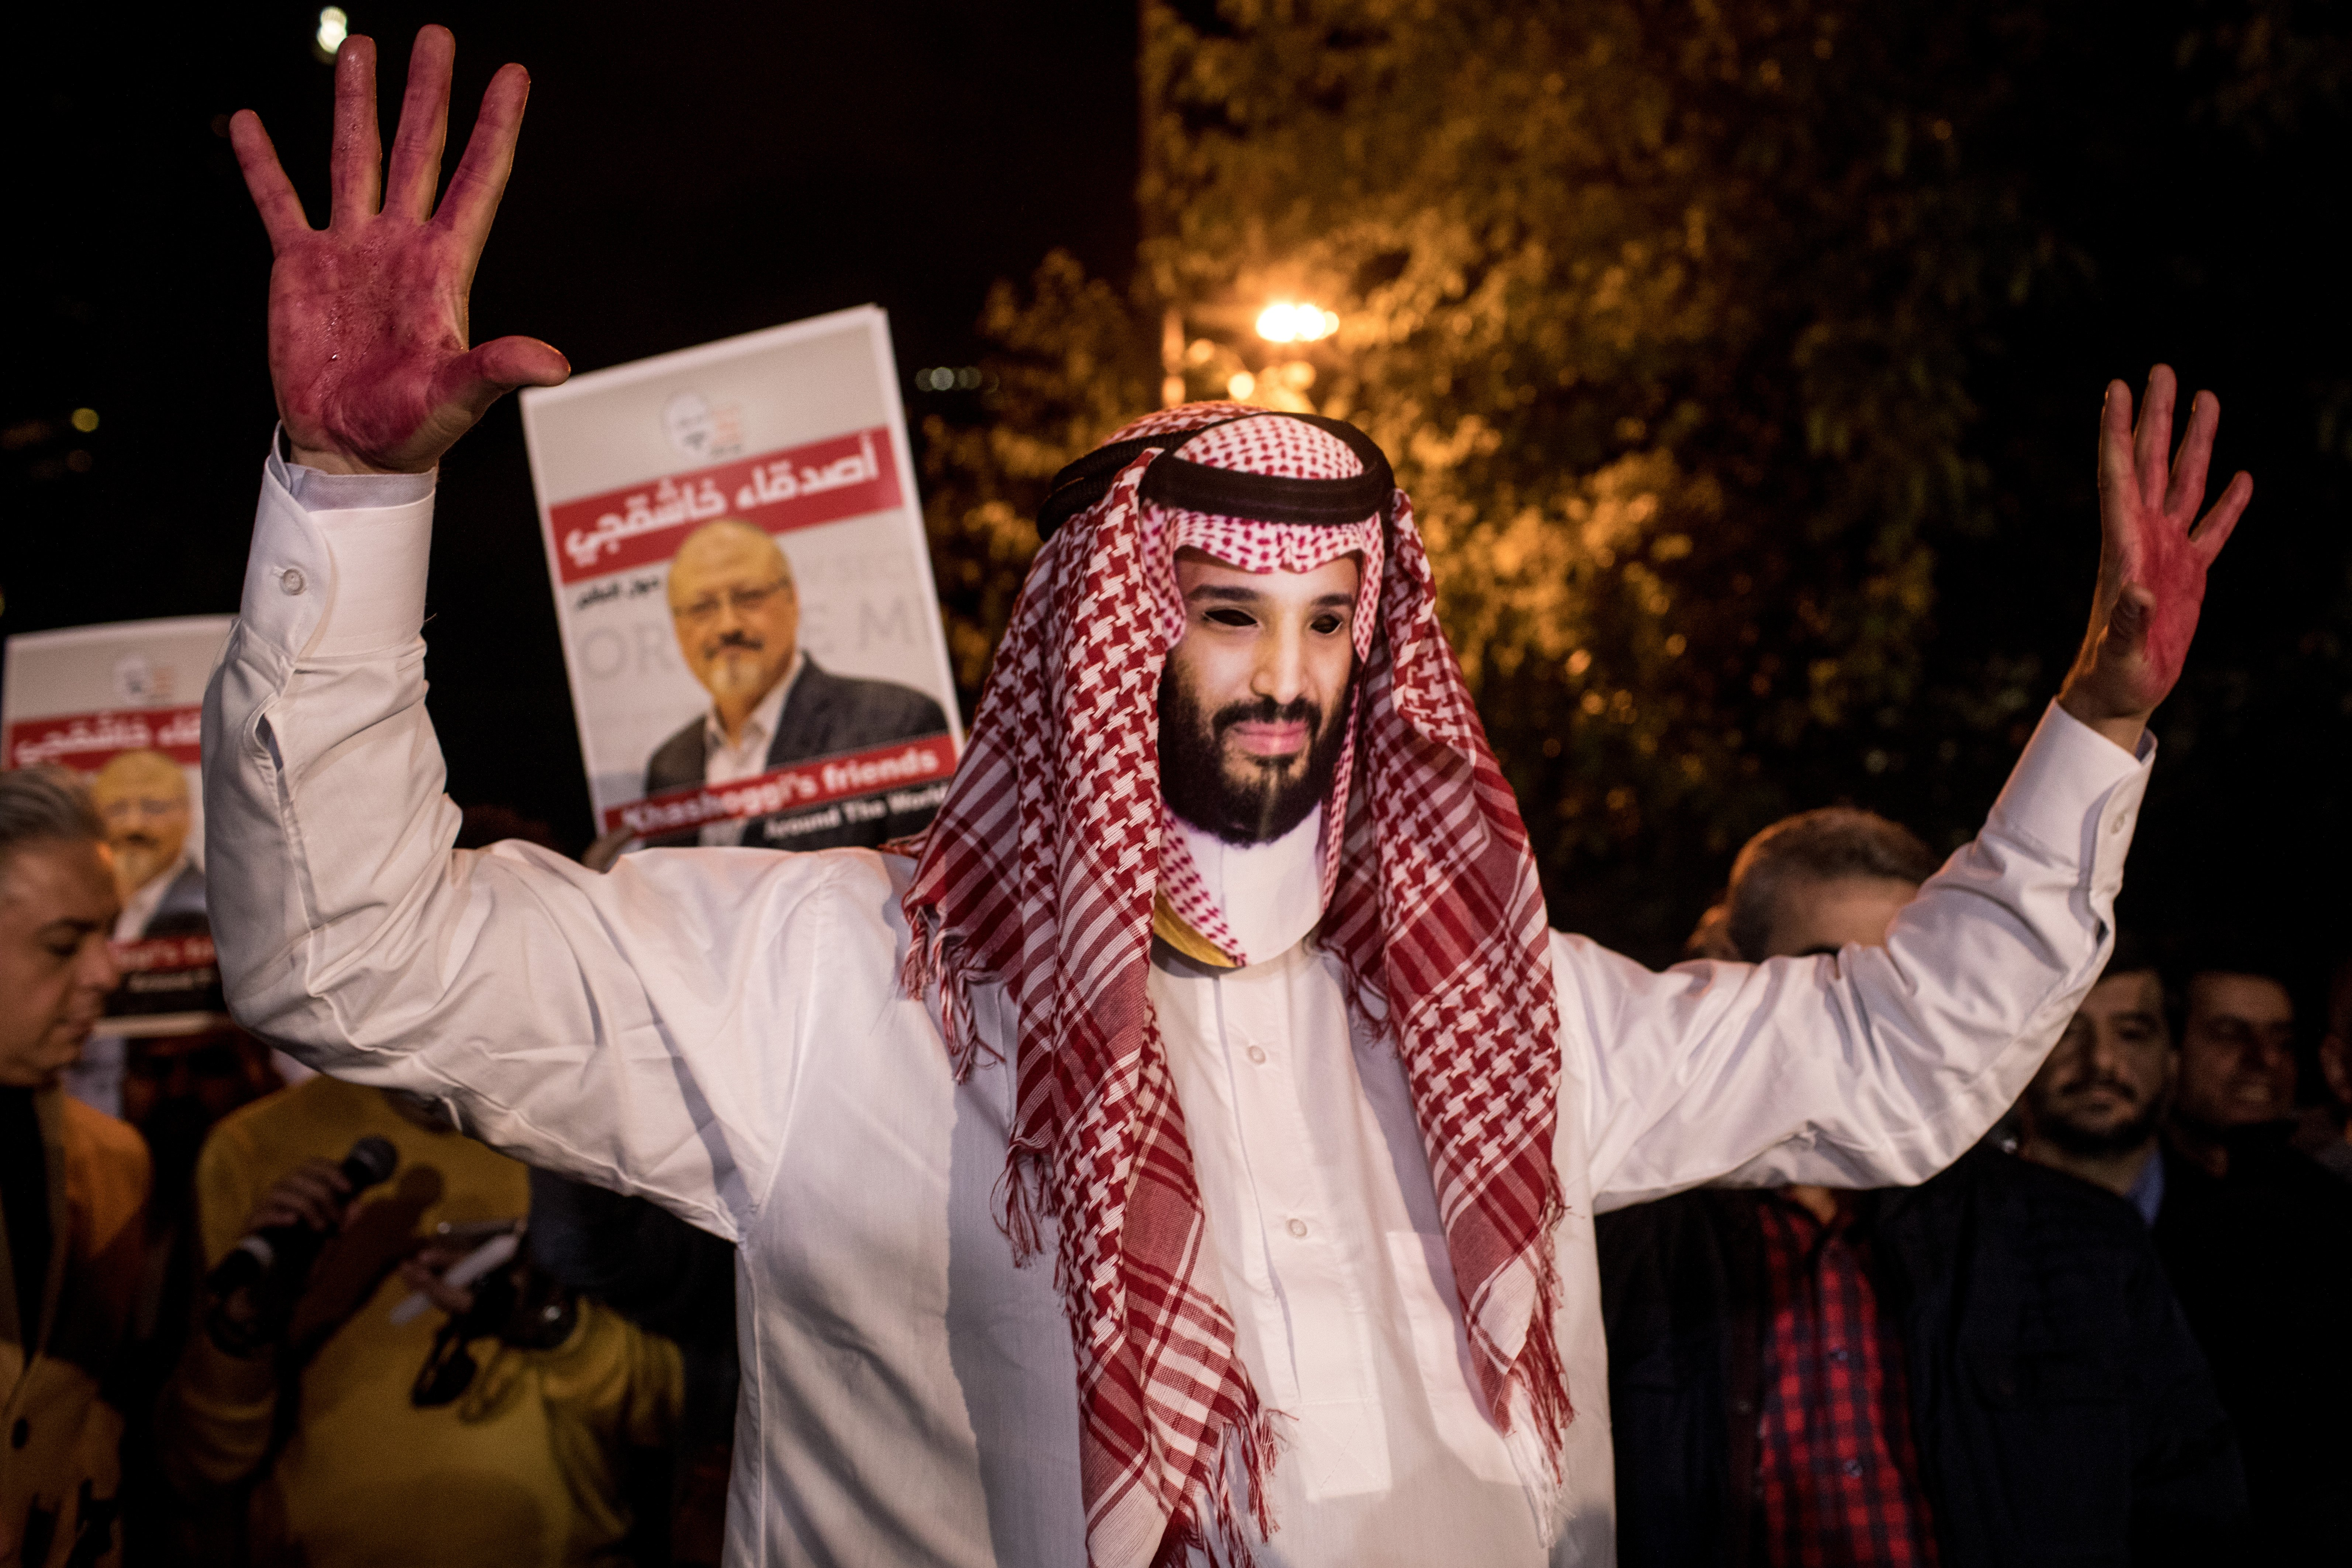 ISTANBUL, TURKEY - OCTOBER 25: A protestor dressed as Saudi Crown Prince Mohammad Bin Salman poses for photographs during a candle light vigil to remember journalist Jamal Khashoggi outside the Saudi Arabia consulate on October 25, 2018 in Istanbul, Turkey. Jamal Khashoggi, a U.S. resident and critic of the Saudi regime, went missing after entering the Saudi Arabian consulate in Istanbul on October 2. More than two weeks later Riyadh announced he had been killed accidentally during an altercation with Saudi consulate officials, however as investigations continue new information surfaced, pointing to a brutal and planned murder contradicting previous claims. (Photo by Chris McGrath/Getty Images)